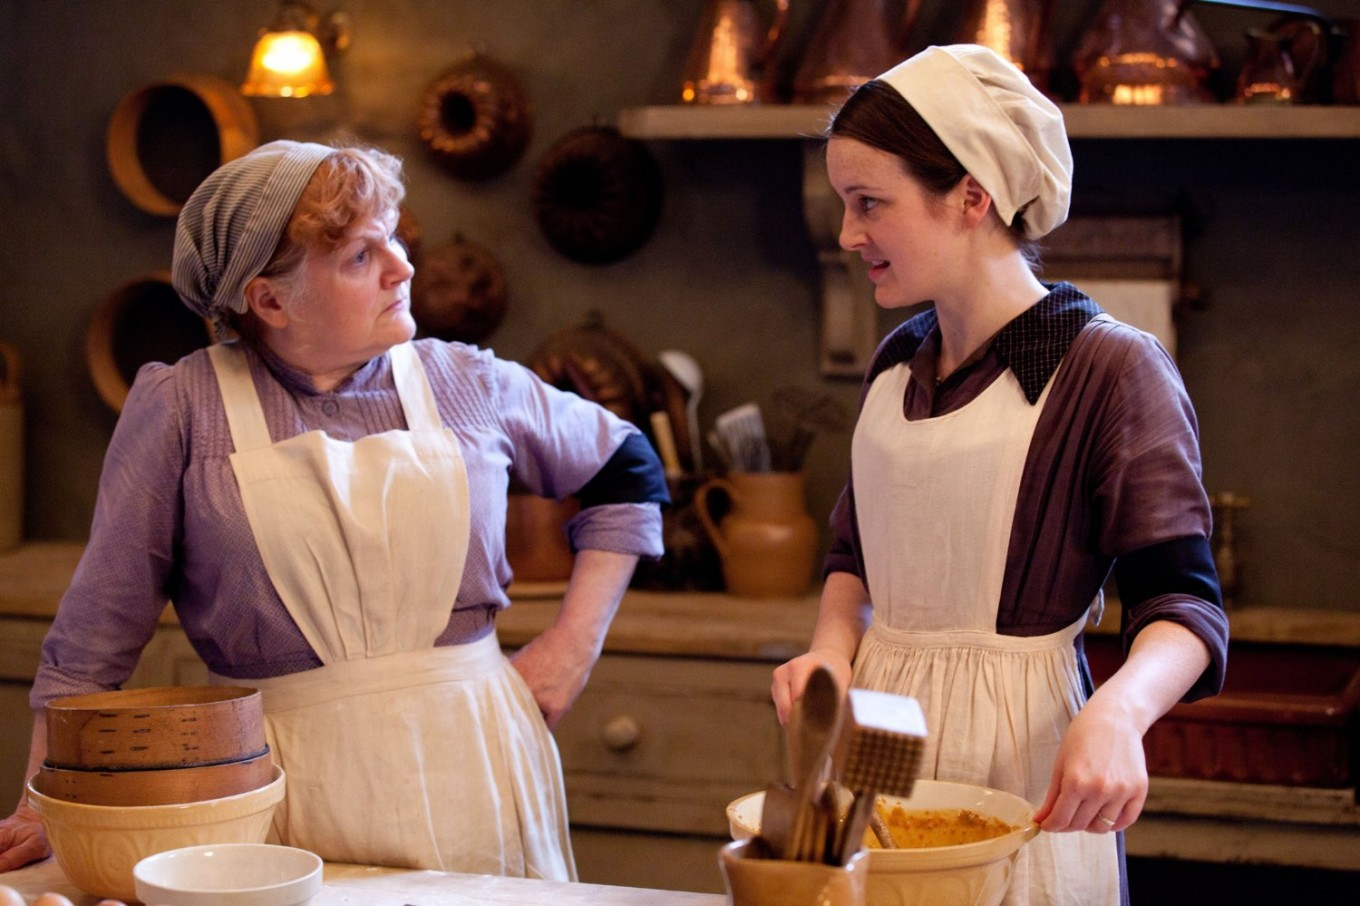 Crawleys await royal visit in 'Downton Abbey' movie, trailer shows